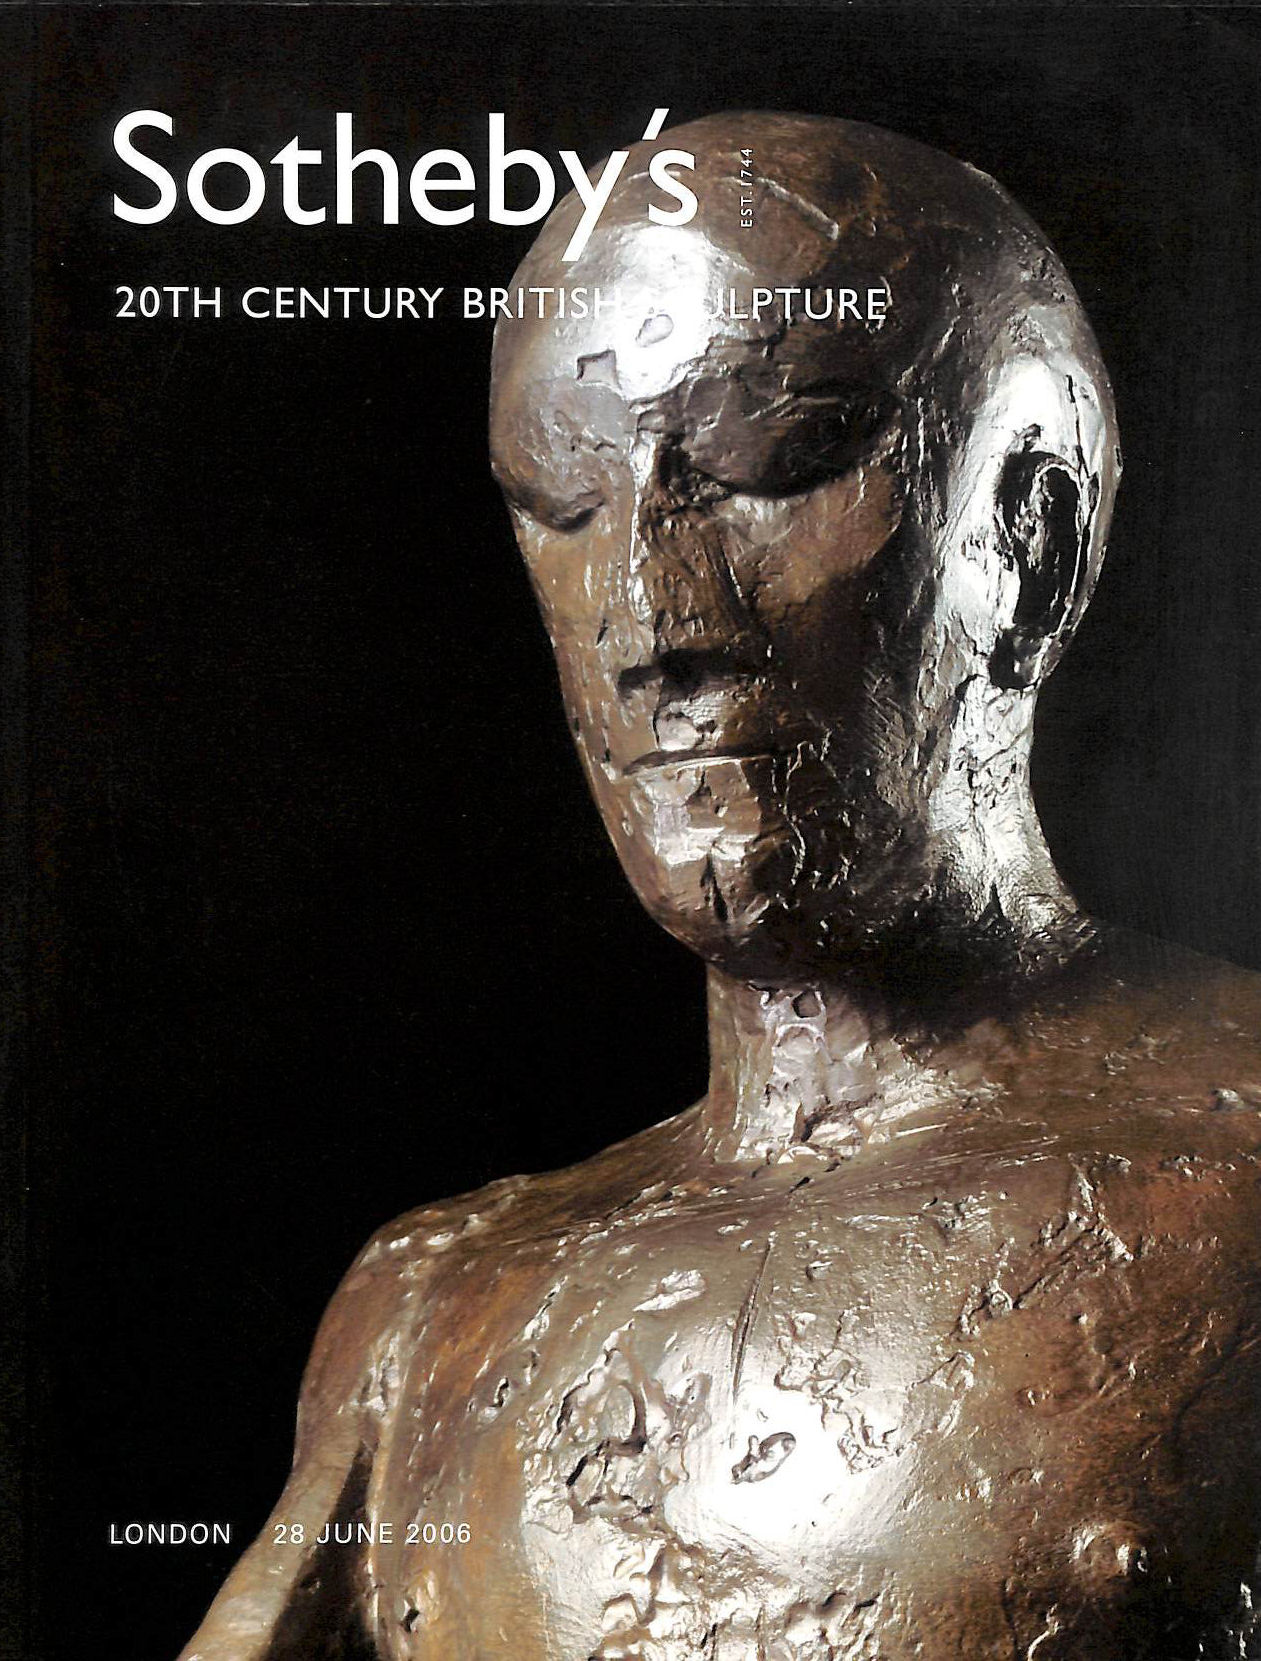 Image for Sotheby's 20th Century British Sculpture. London 28 June, 2006. Inc. Sir Jacob Epstein. Henry Moore. Sir Anthony Caro.